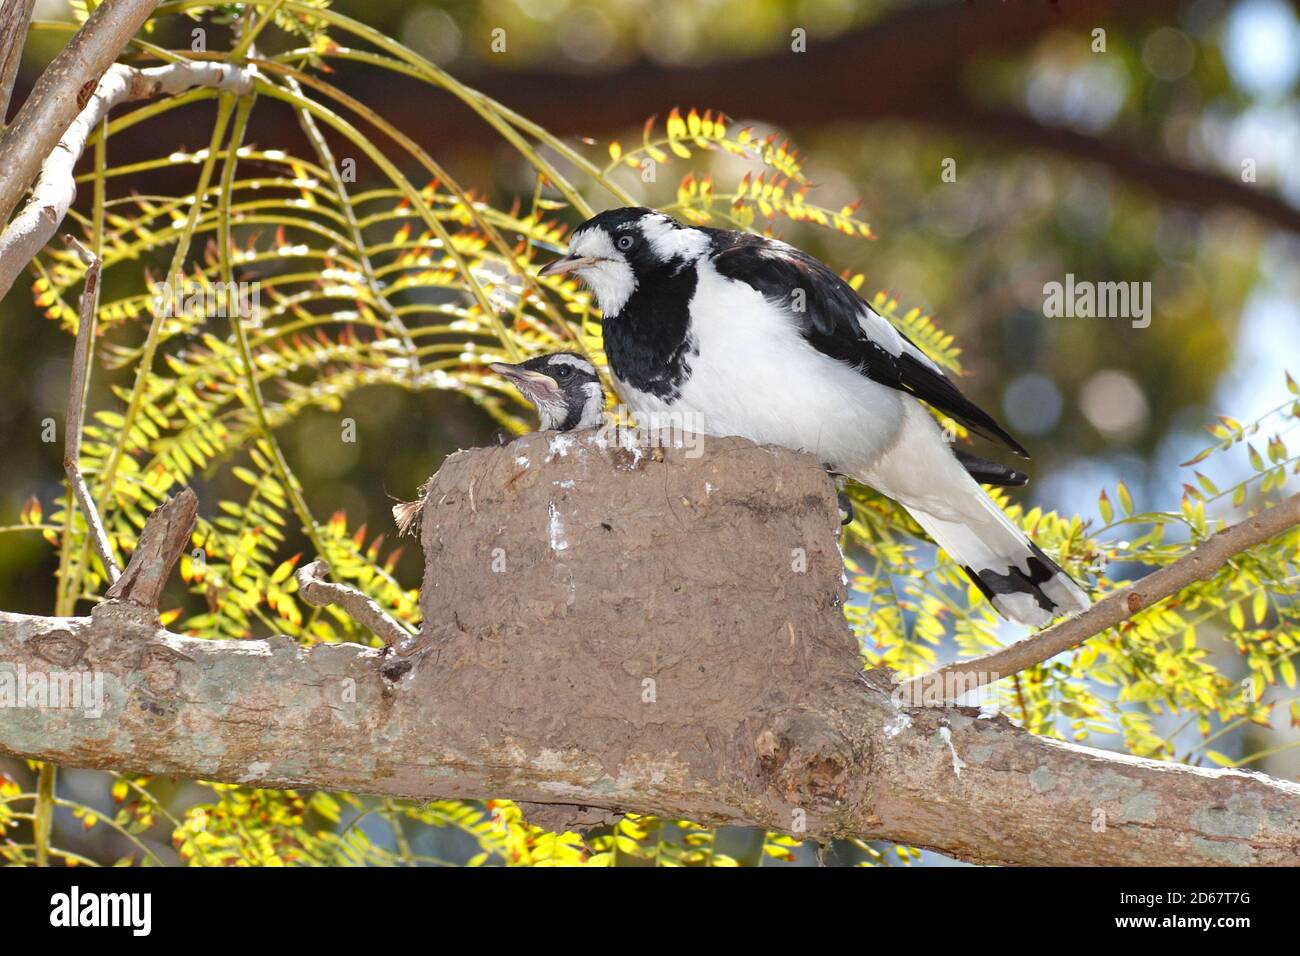 magpie-lark-also-known-as-the-peewee-peewit-or-mudlark-grallina-cyanoleuca-female-bird-is-on-the-side-of-the-nest-made-from-mud-there-is-the-head-2D67T7G.jpg